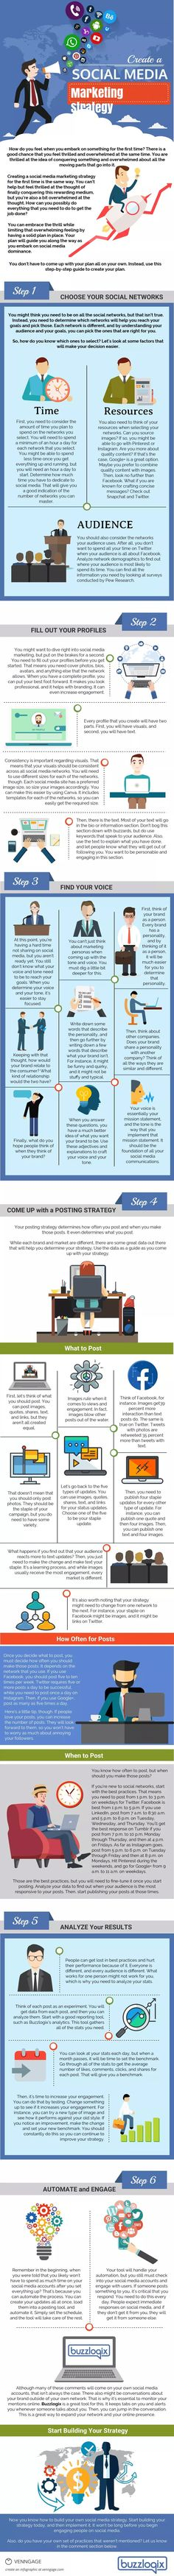 6 Steps to a Successful #SocialMedia #Marketing Strategy #Infographic